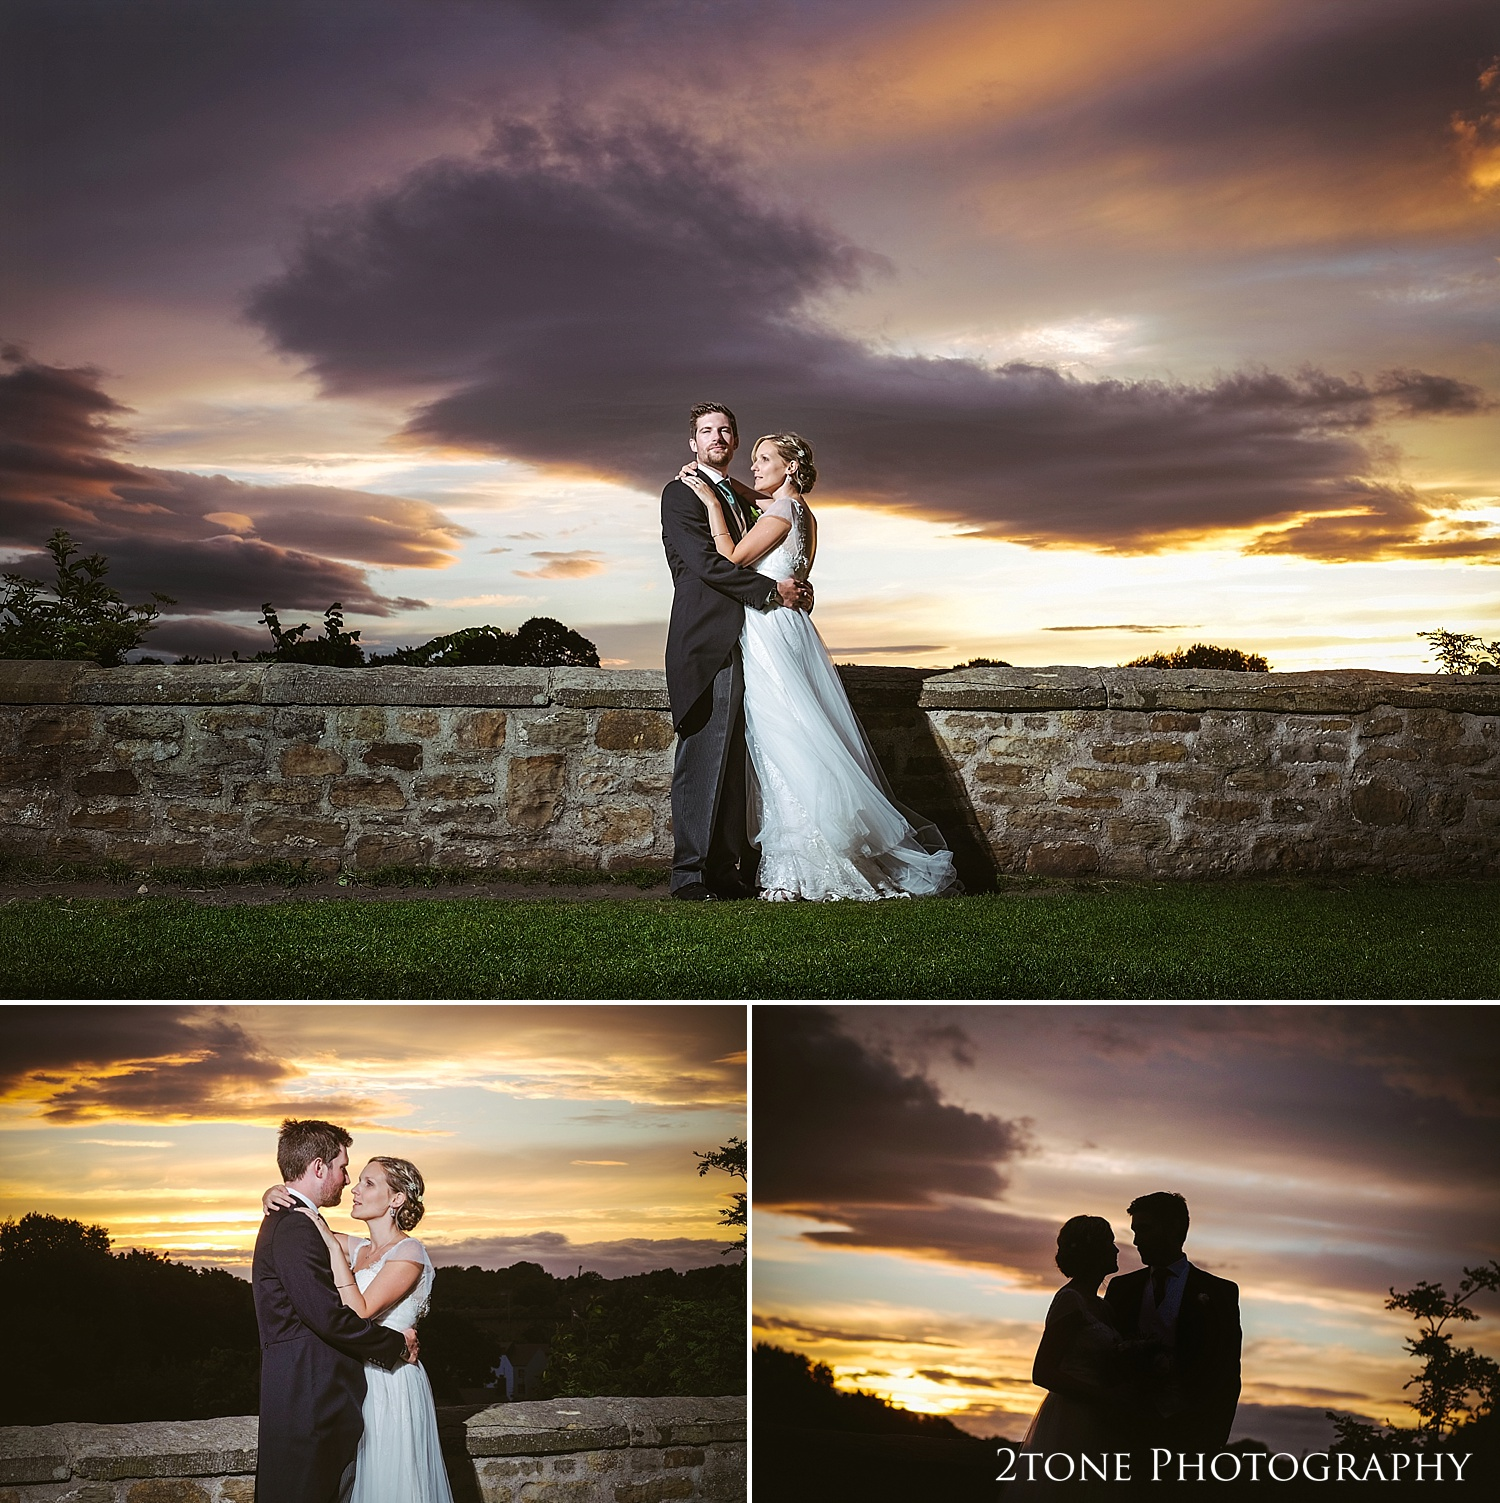 Sunset wedding photography at Durham Castle by husband and wife team 2tone Photography www.2tonephotography.co.uk